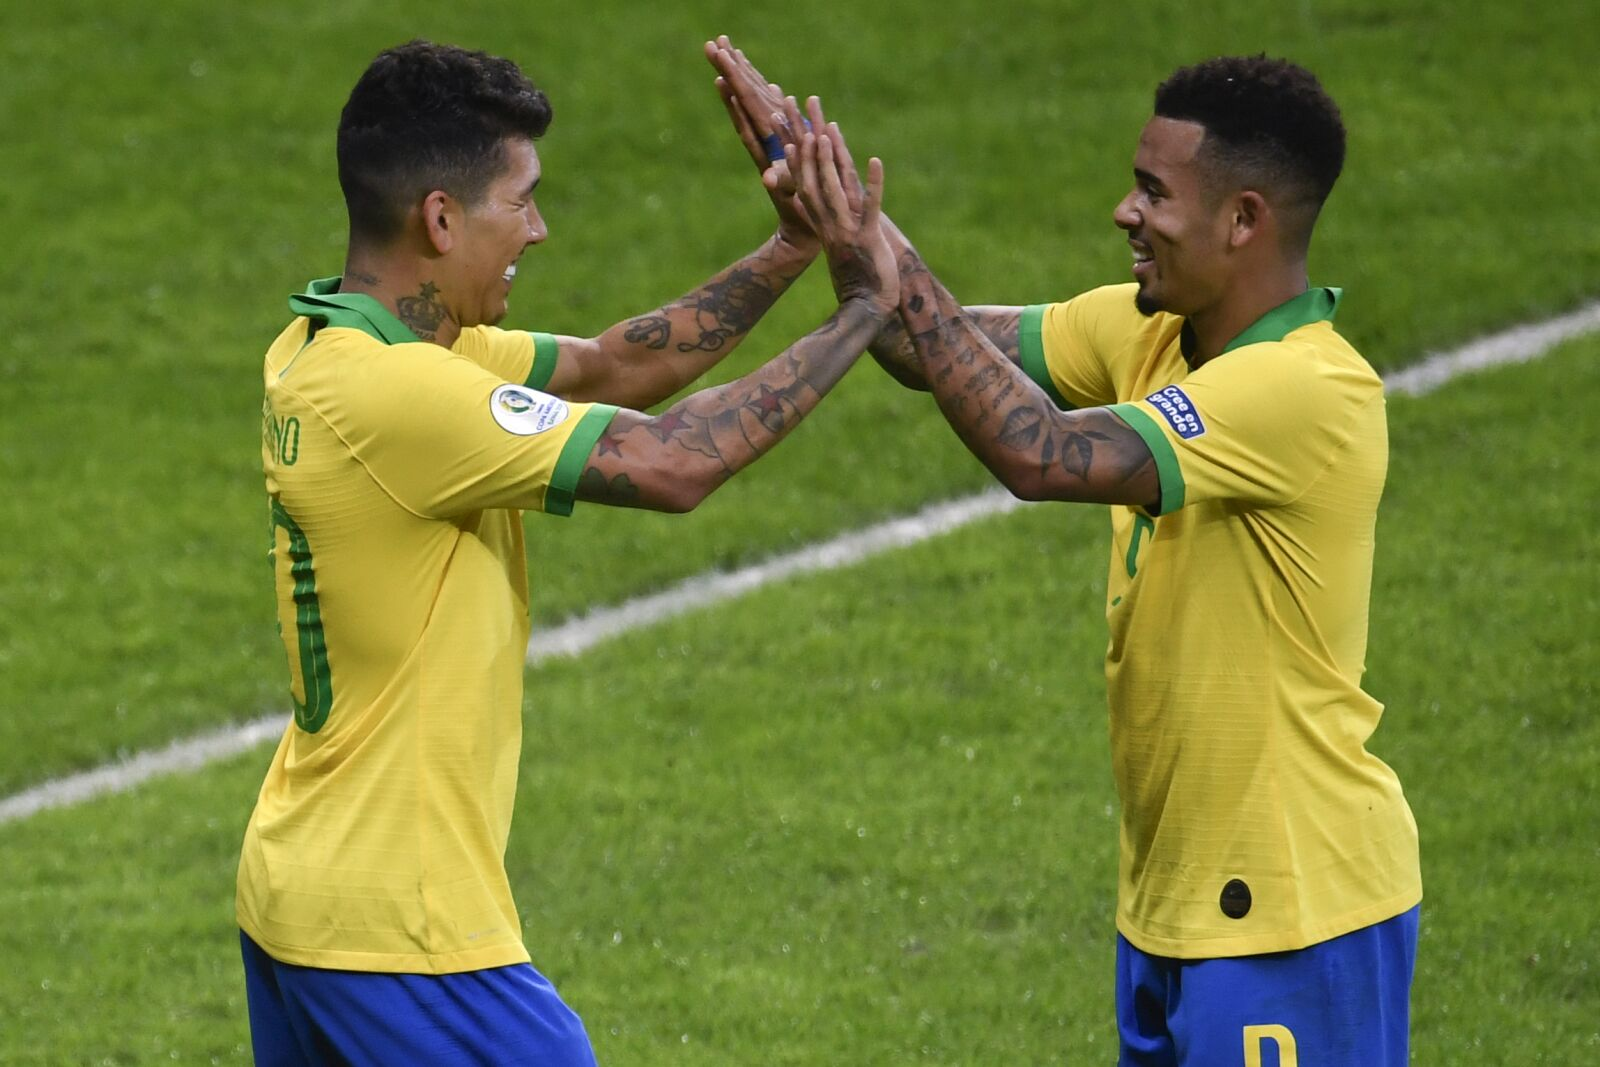 Roberto Firmino and Gabriel Jesus proving they can play together